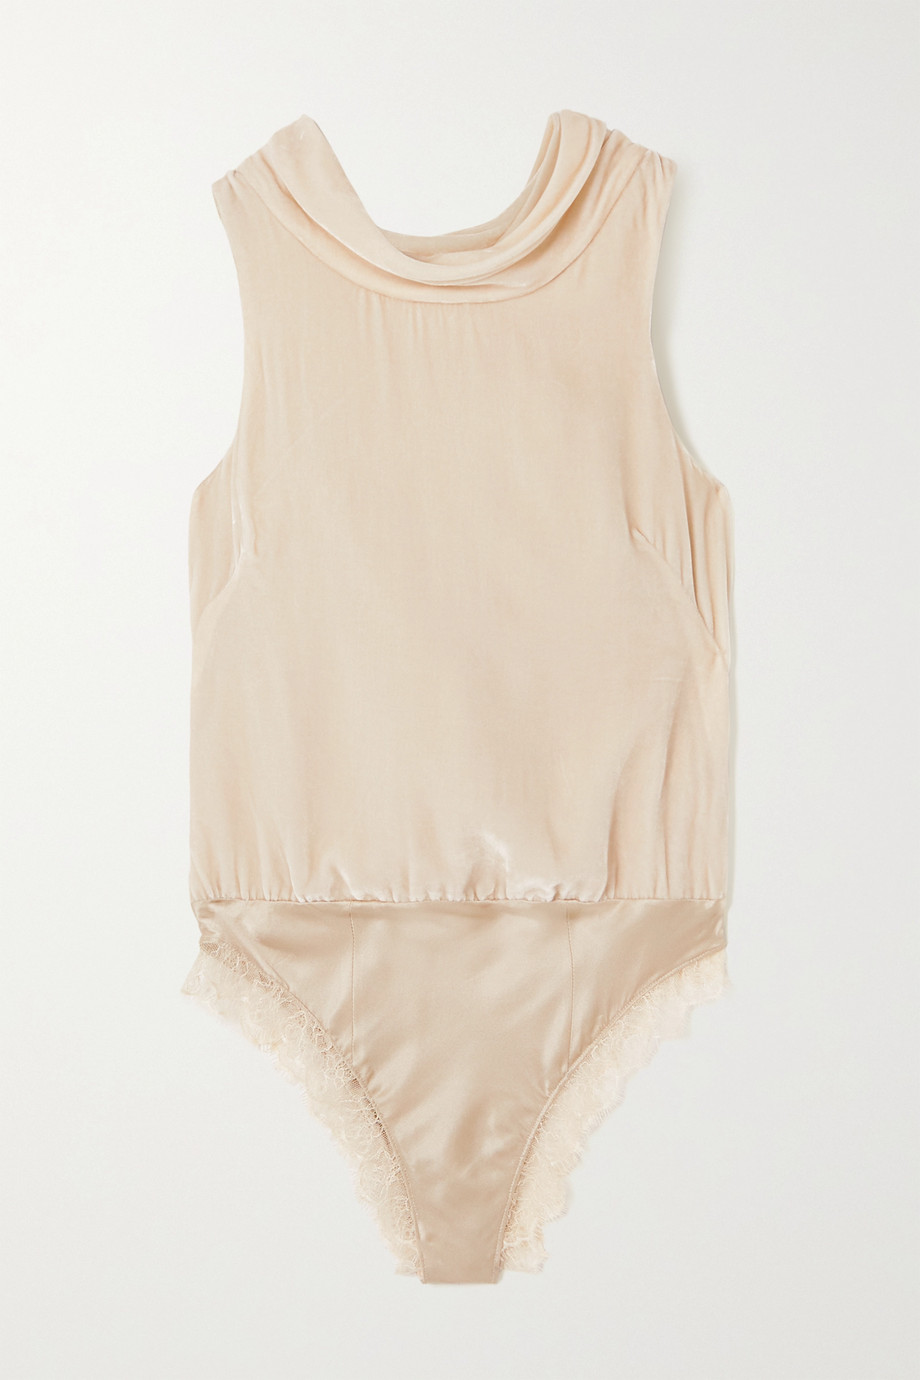 SLEEPING WITH JACQUES Bianca open-back lace-trimmed velvet and satin bodysuit